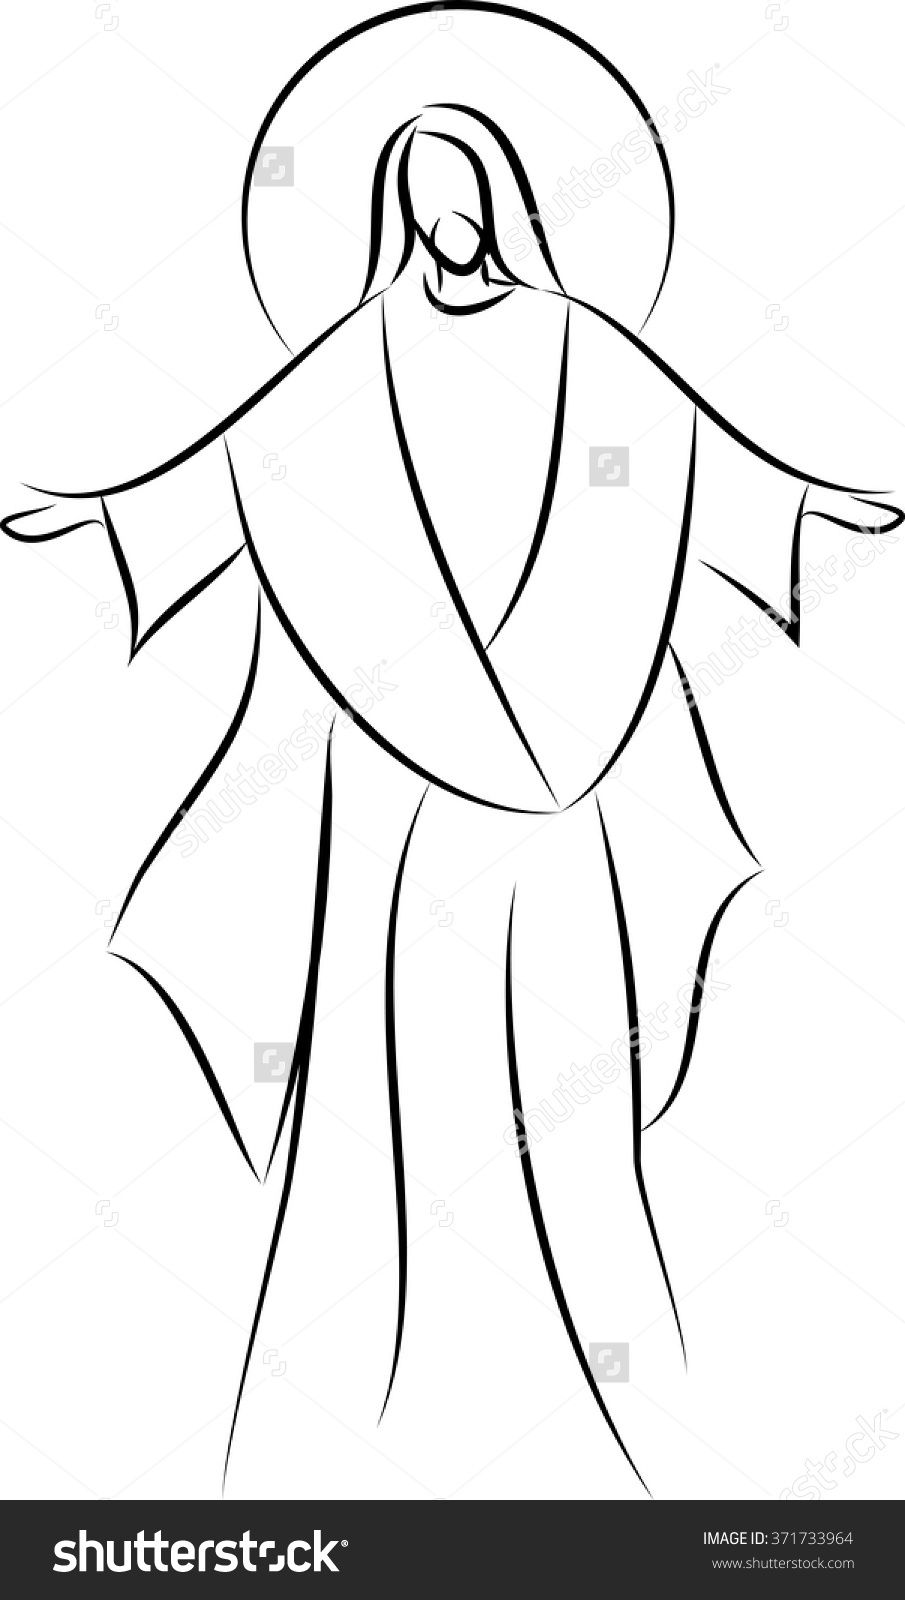 Line Art Jesus : Stock vector jesus christ simple line drawing